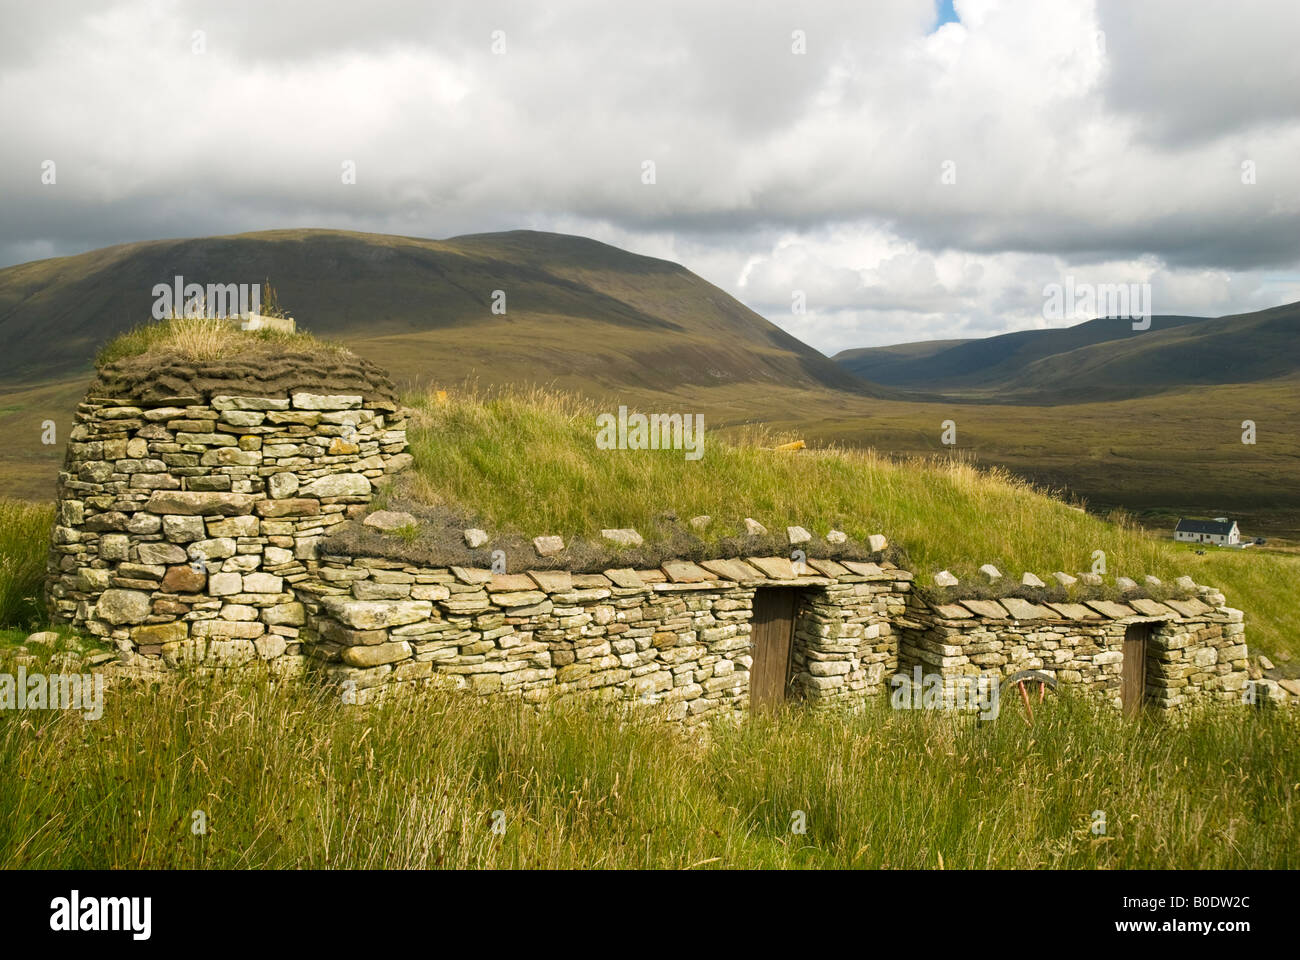 Old farm house with turf roof at Rackwick, Isle of Hoy, Orkney Islands, Scotland, UK Stock Photo